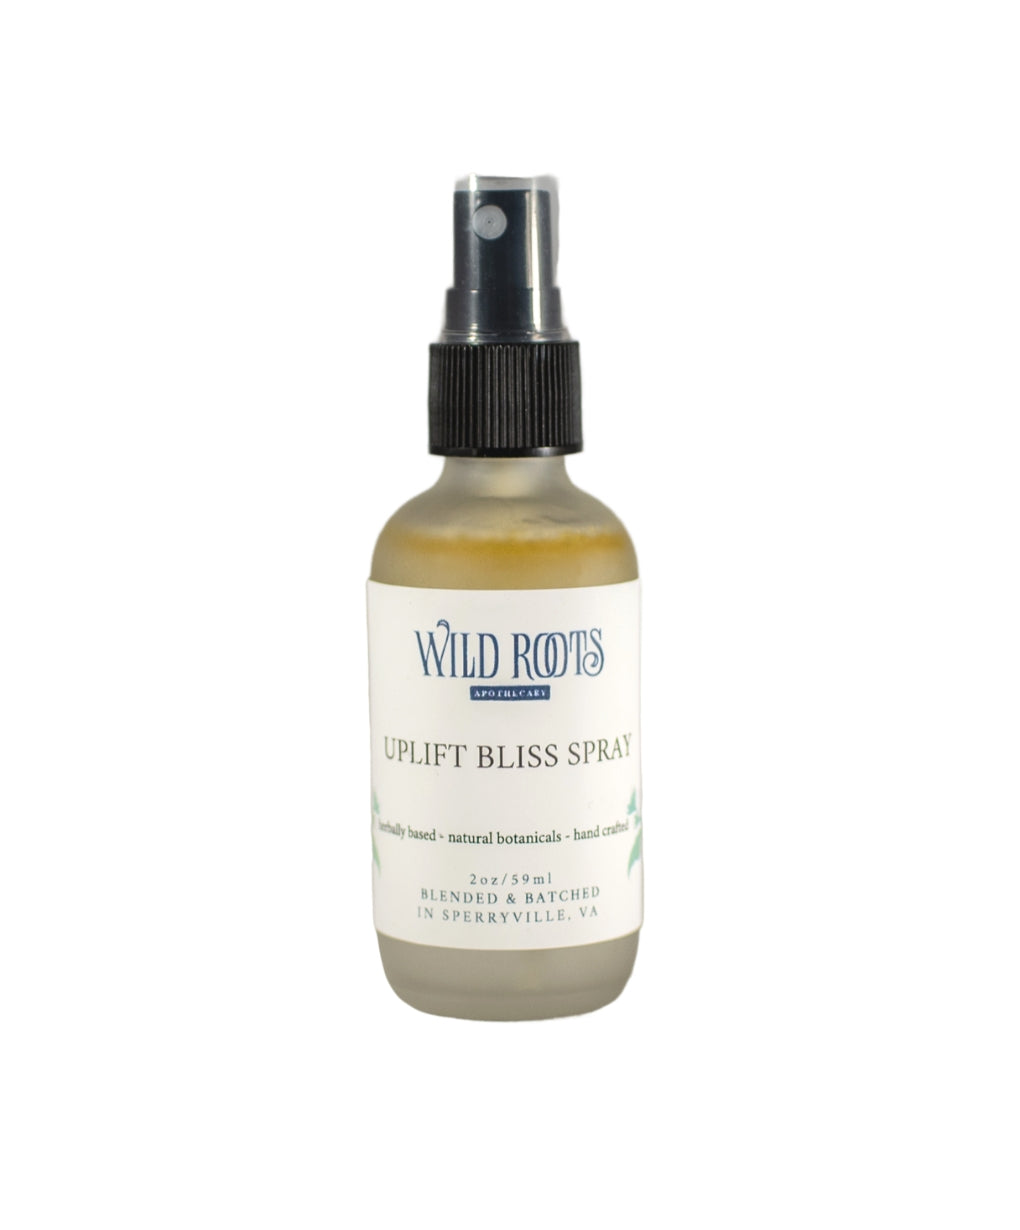 Uplift Bliss Spray